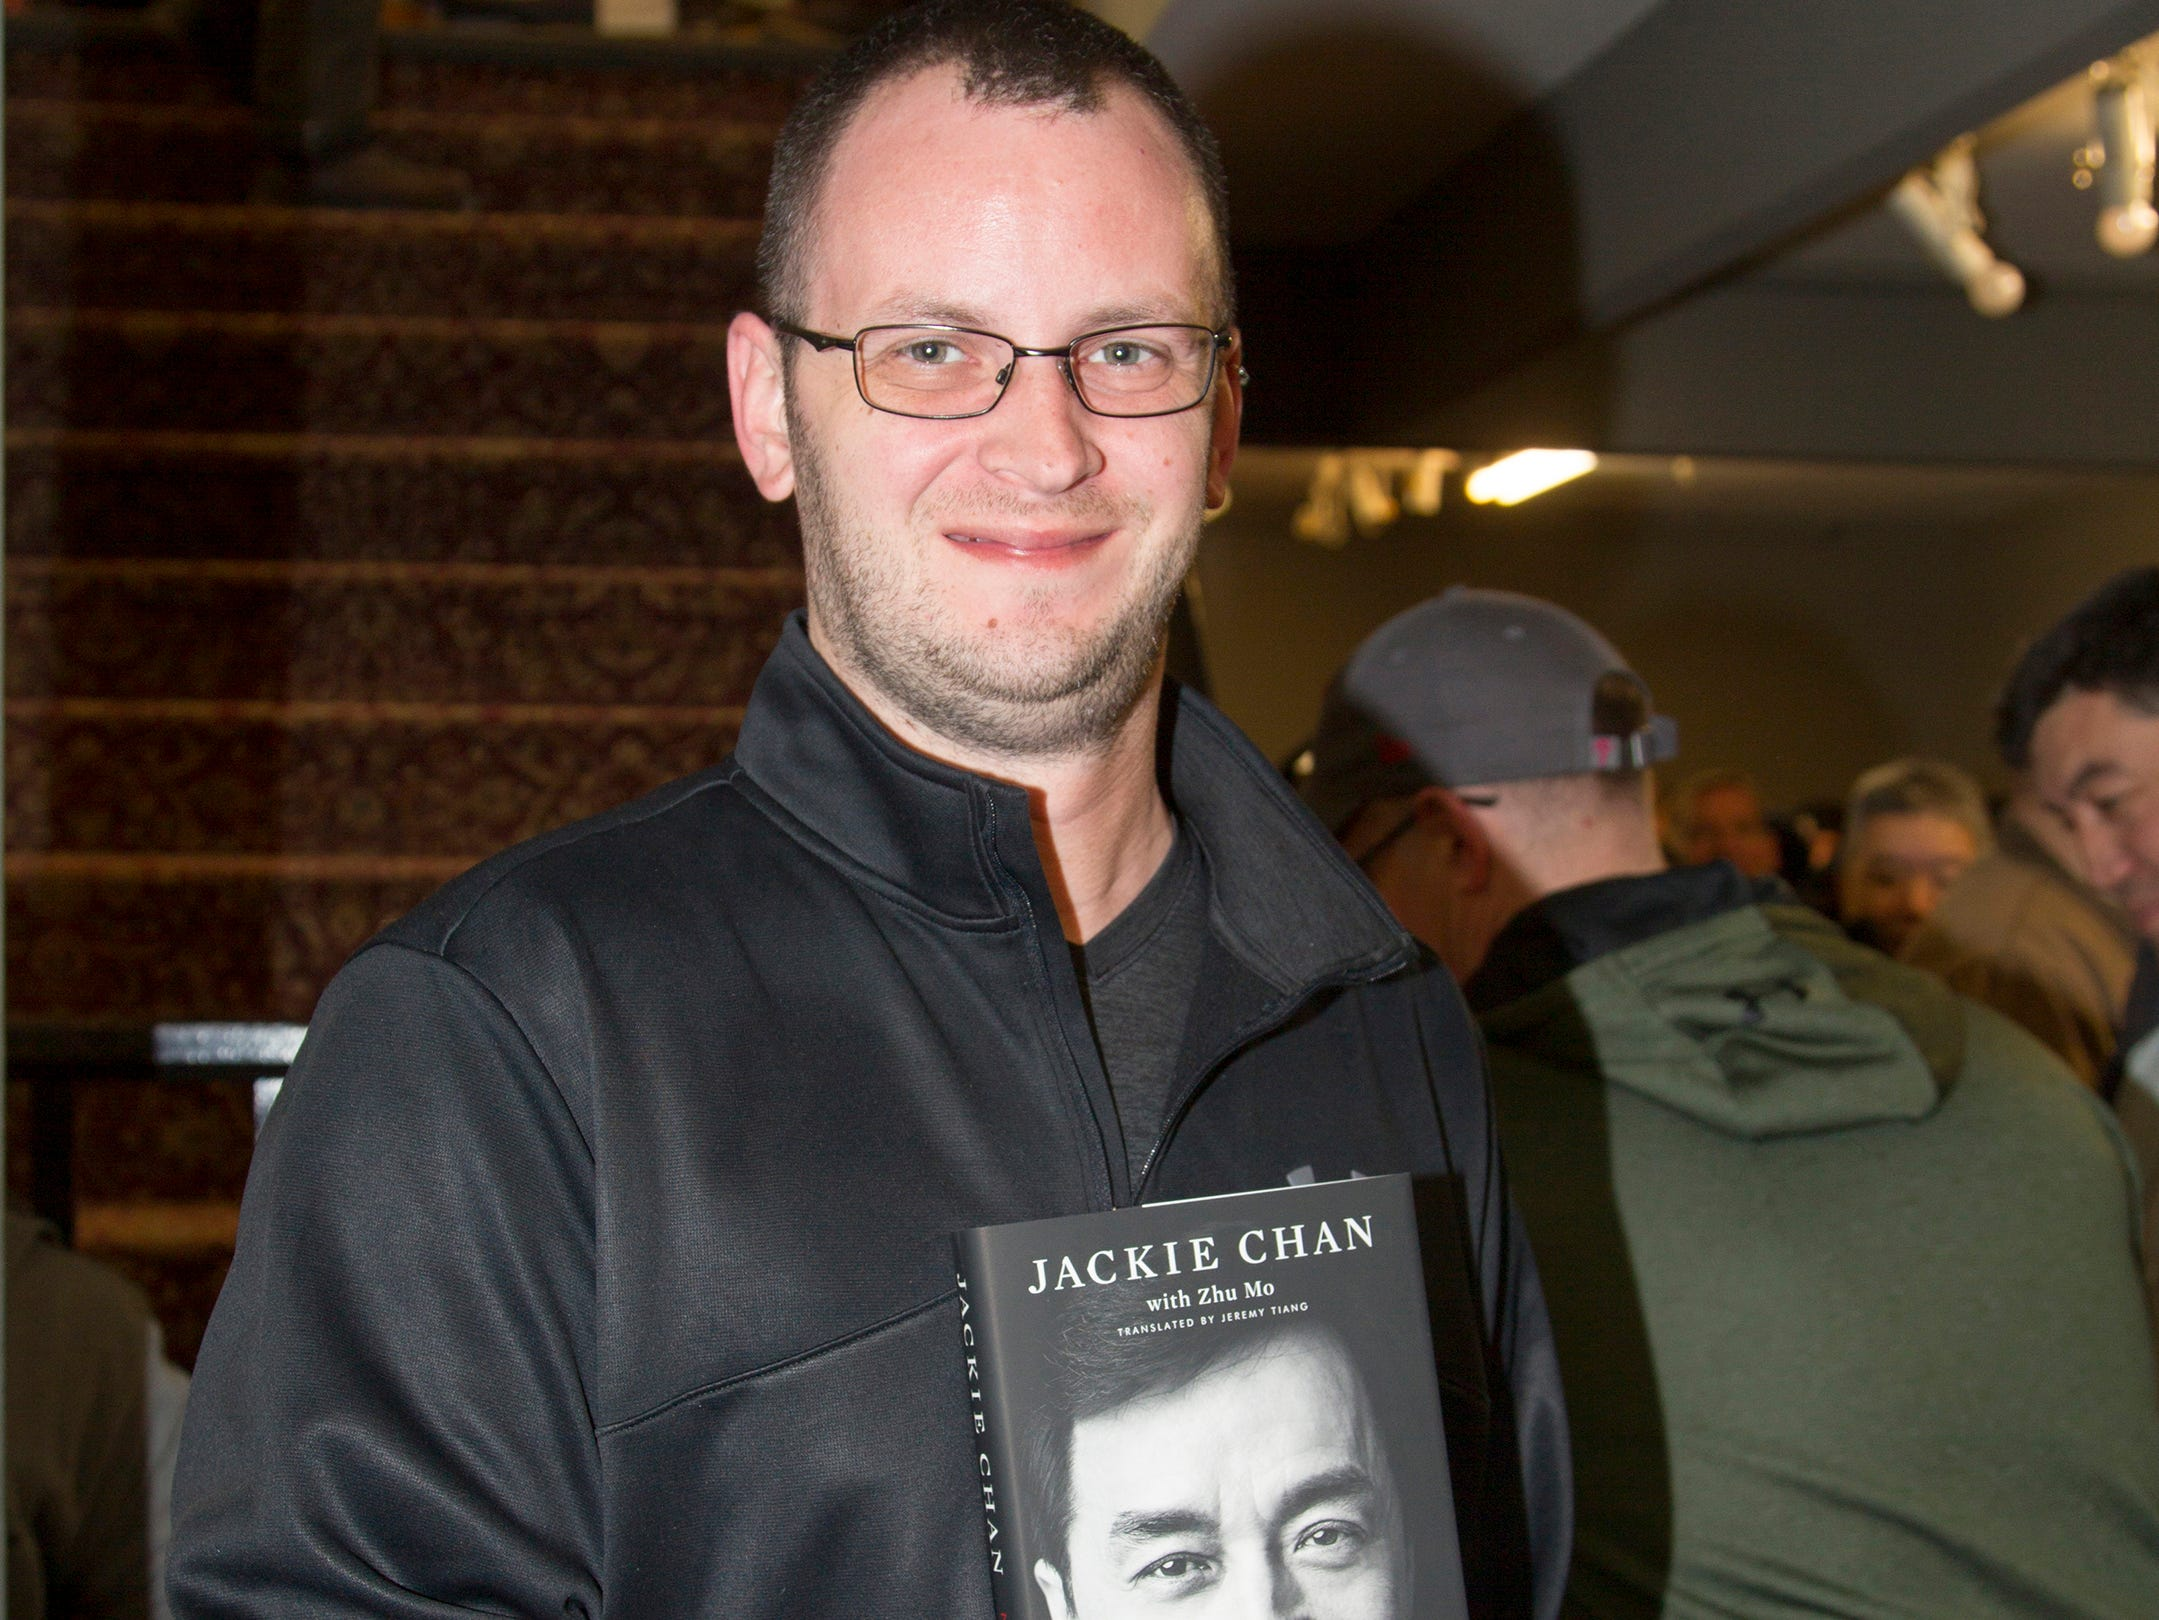 """John. Jackie Chan greets fans at Bookends in Ridgewood while signing his new book, """"Never Grow Up."""" 01/21/2019"""